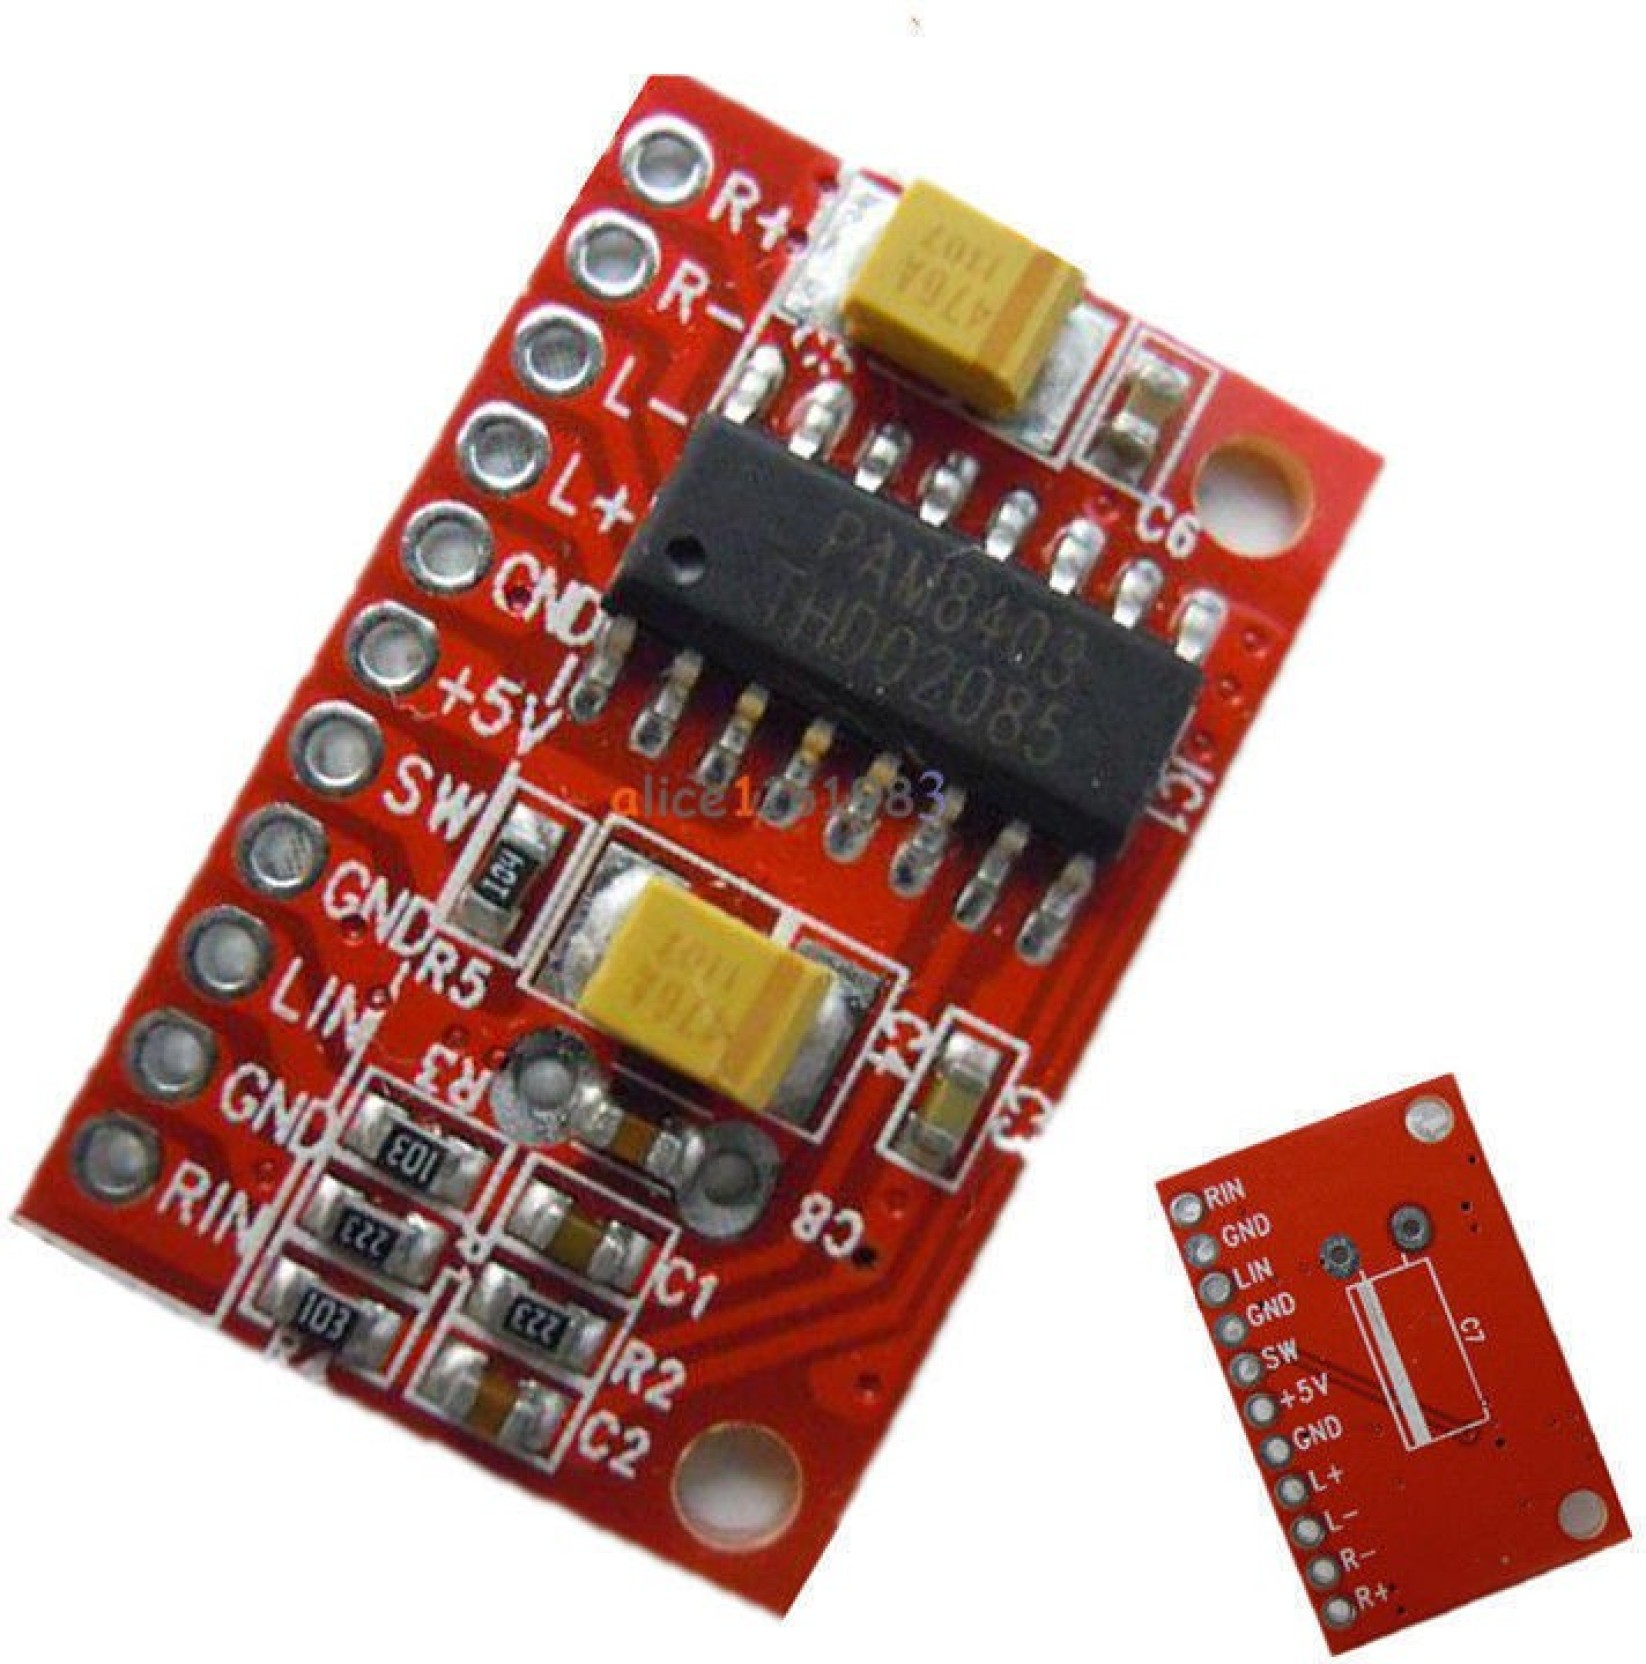 Mini Digital Amplifier Board Class D 23w Usb Power Pam8403 Audio Hifi 5v Stereo 2 Channel 3w Arduino M173 Channels Fiber